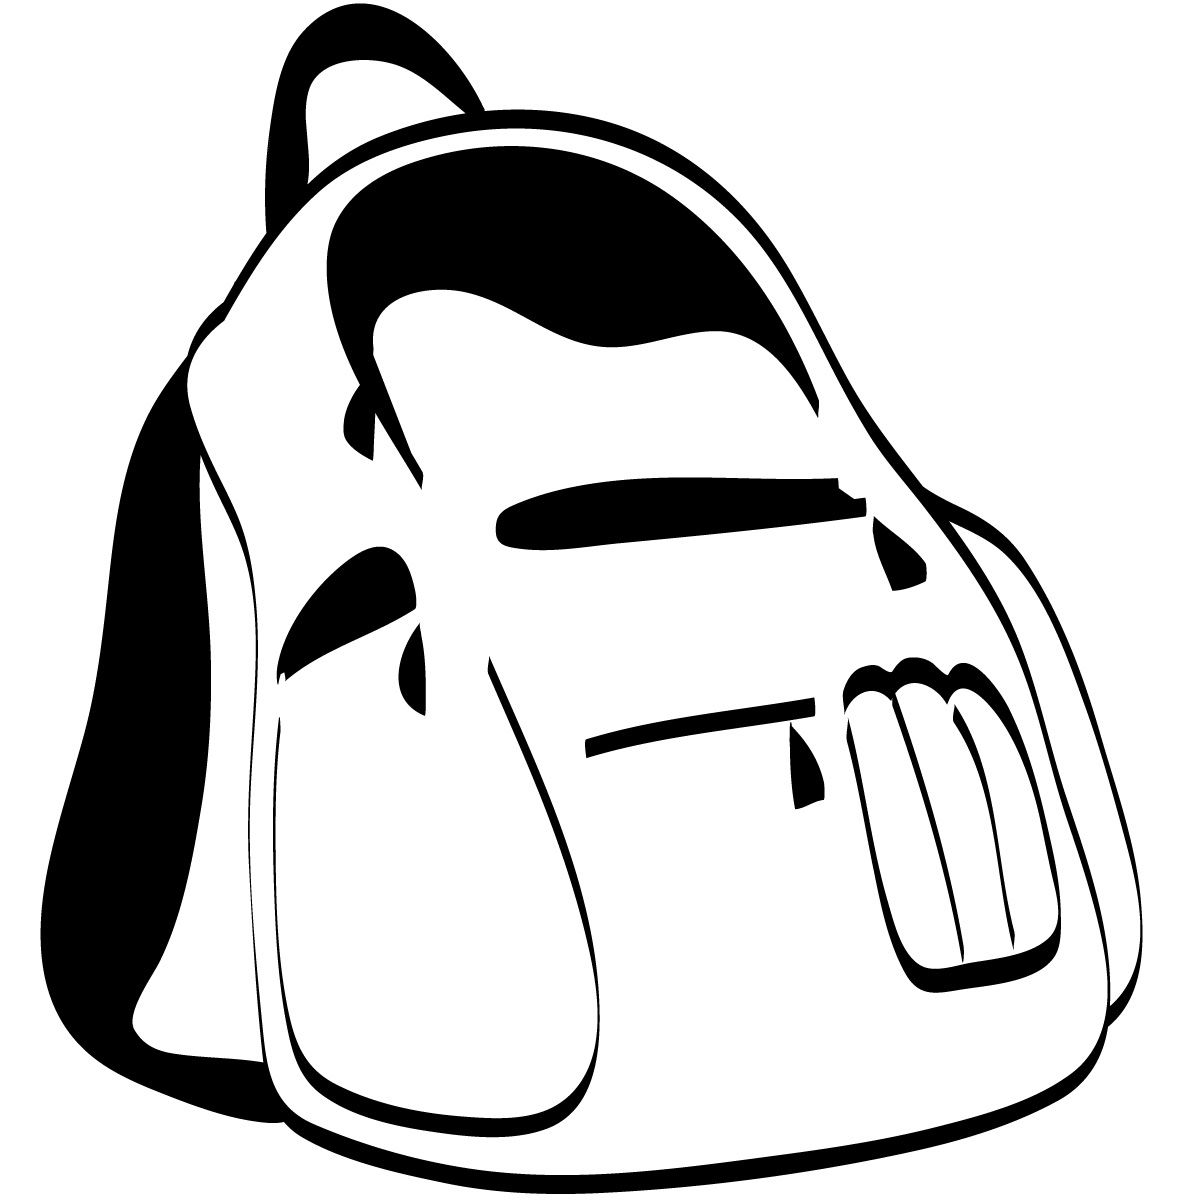 1200x1200 Image Of School Supplies Clipart Black And White